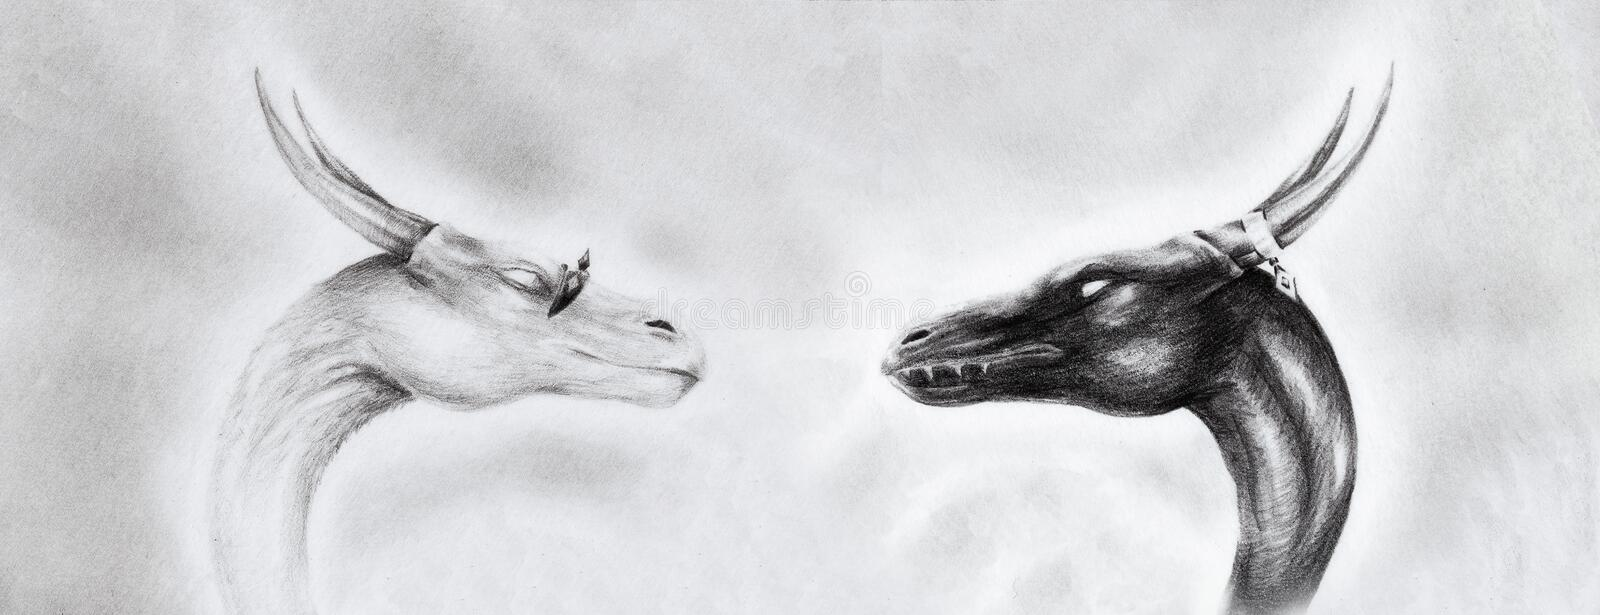 Drawing of two dragon heads on papier with abstract background. royalty free illustration